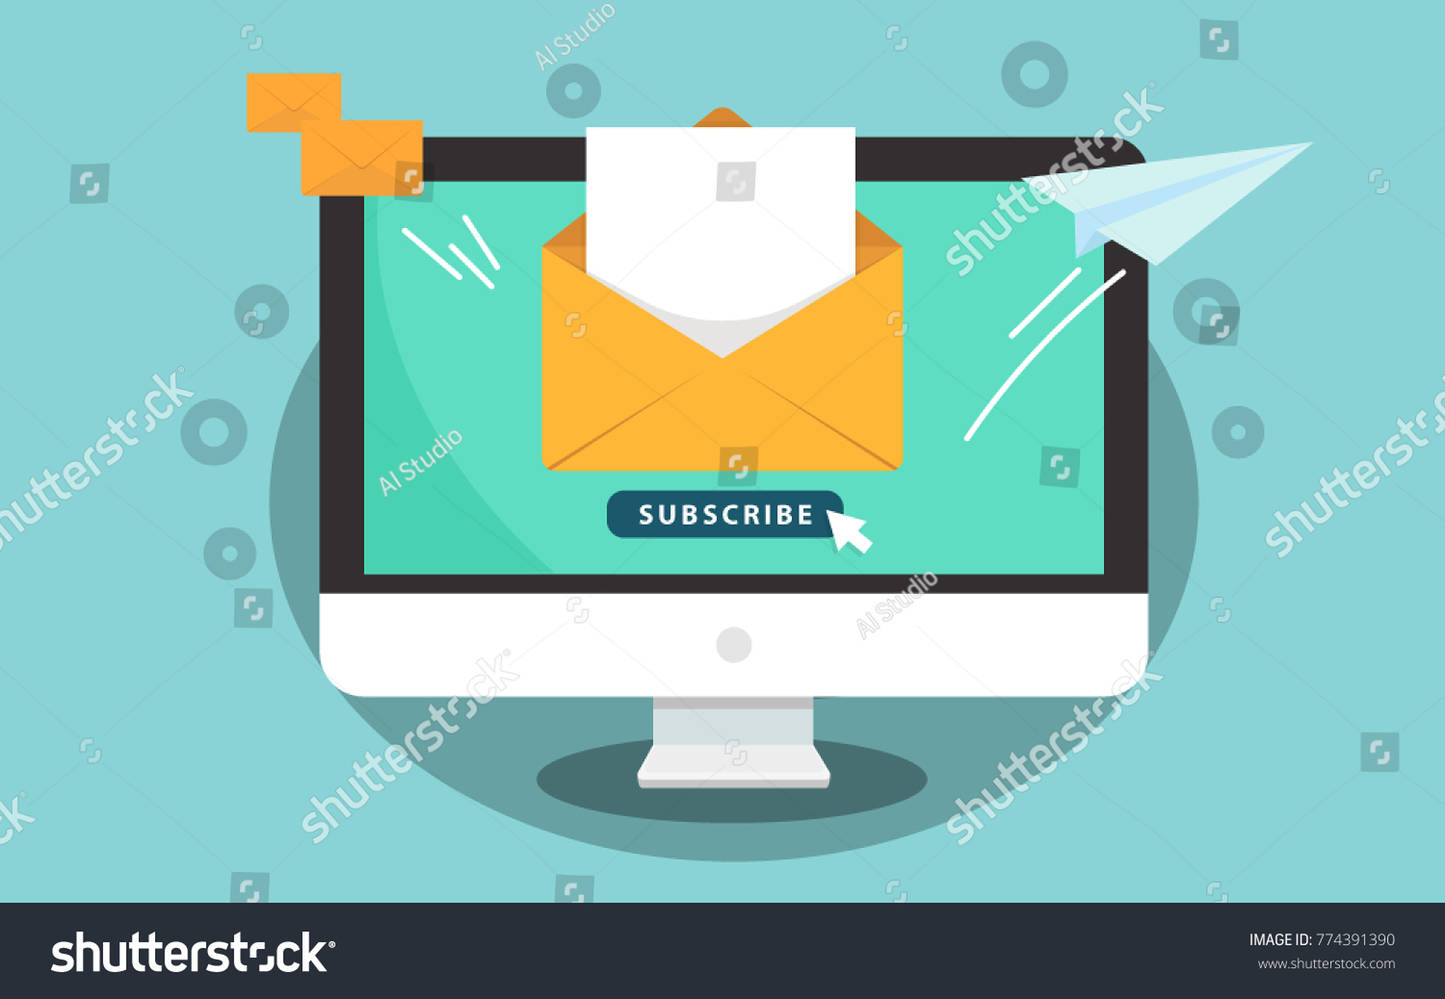 https://image.shutterstock.com/z/stock-vector-subscribe-to-newsletter-concept-subscribe-button-with-the-cursor-on-the-computer-screen-open-774391390.jpg